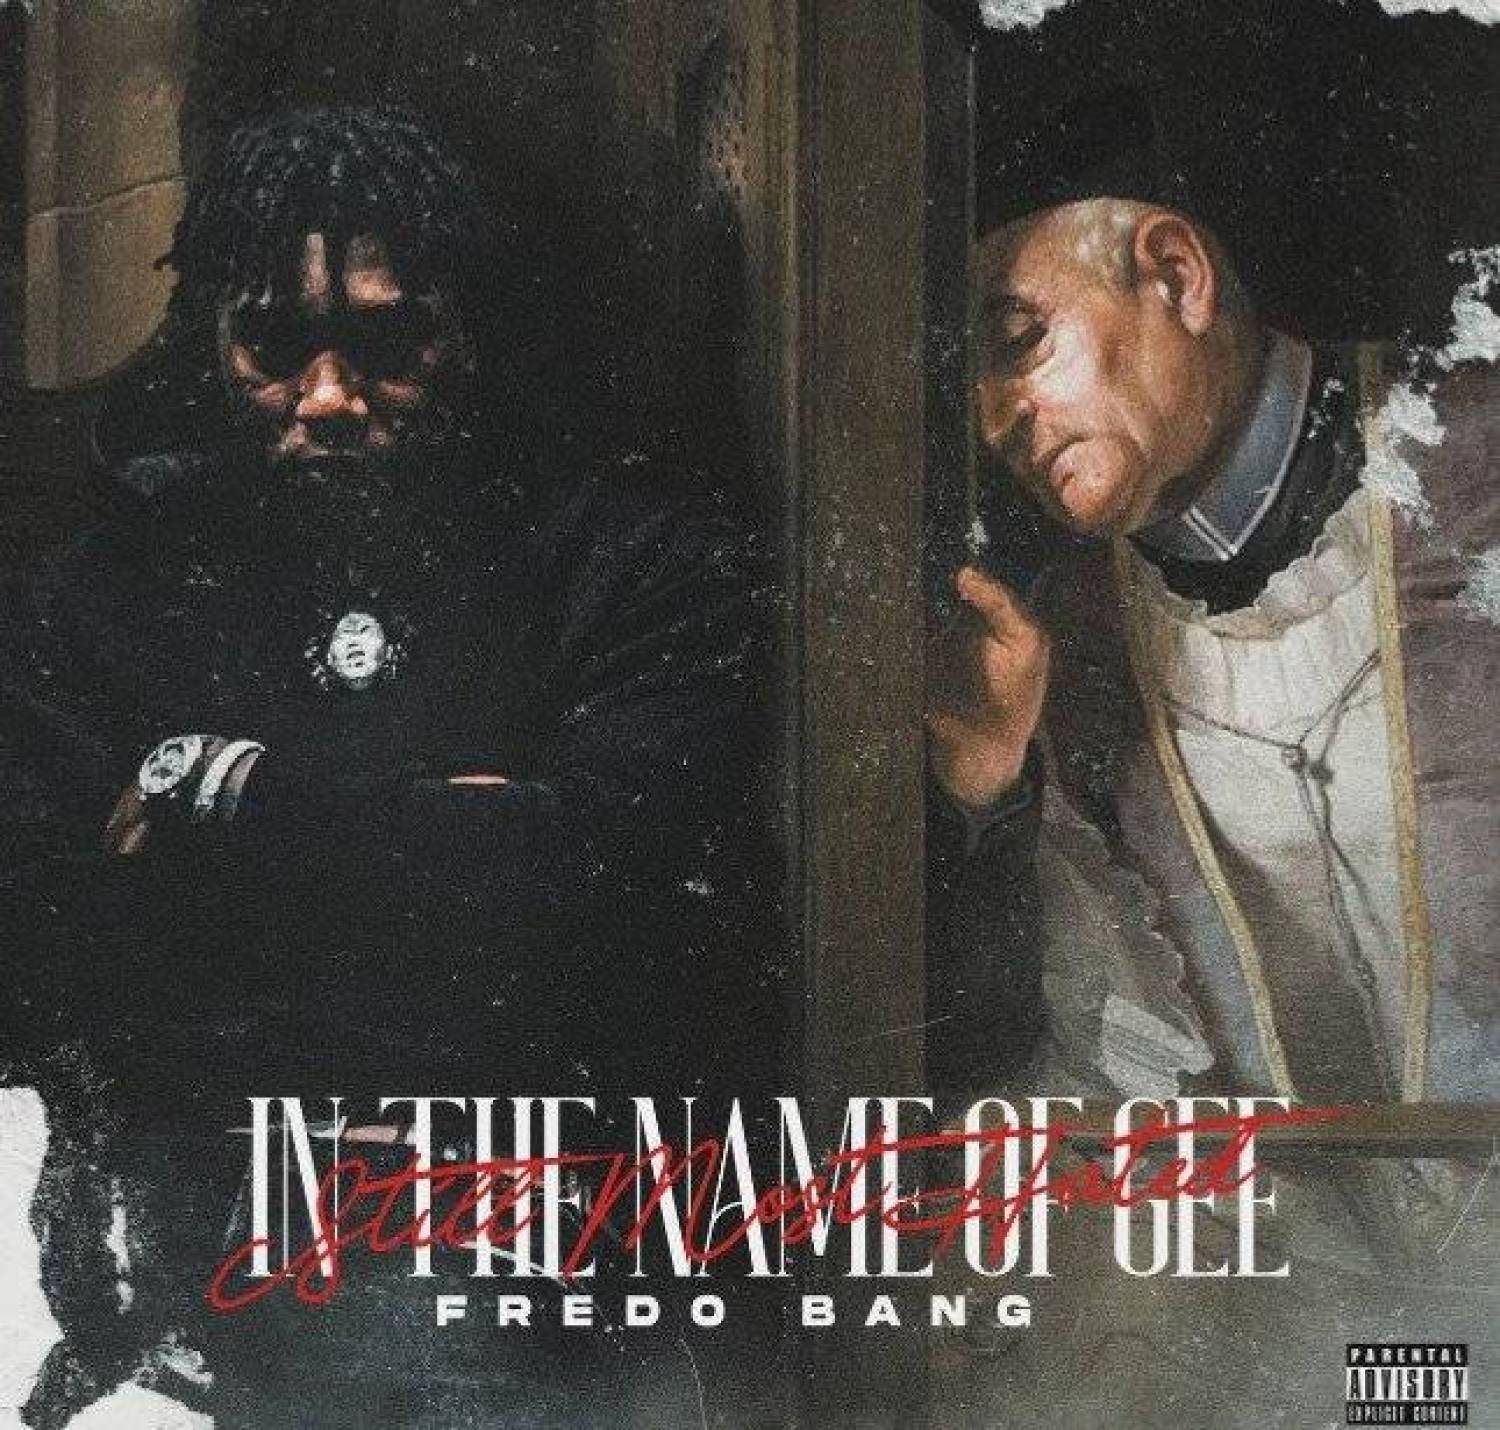 DOWNLOAD ALBUM: Fredo Bang – In The Name Of Gee (Still Most Hated) ZIP Full Album MP3